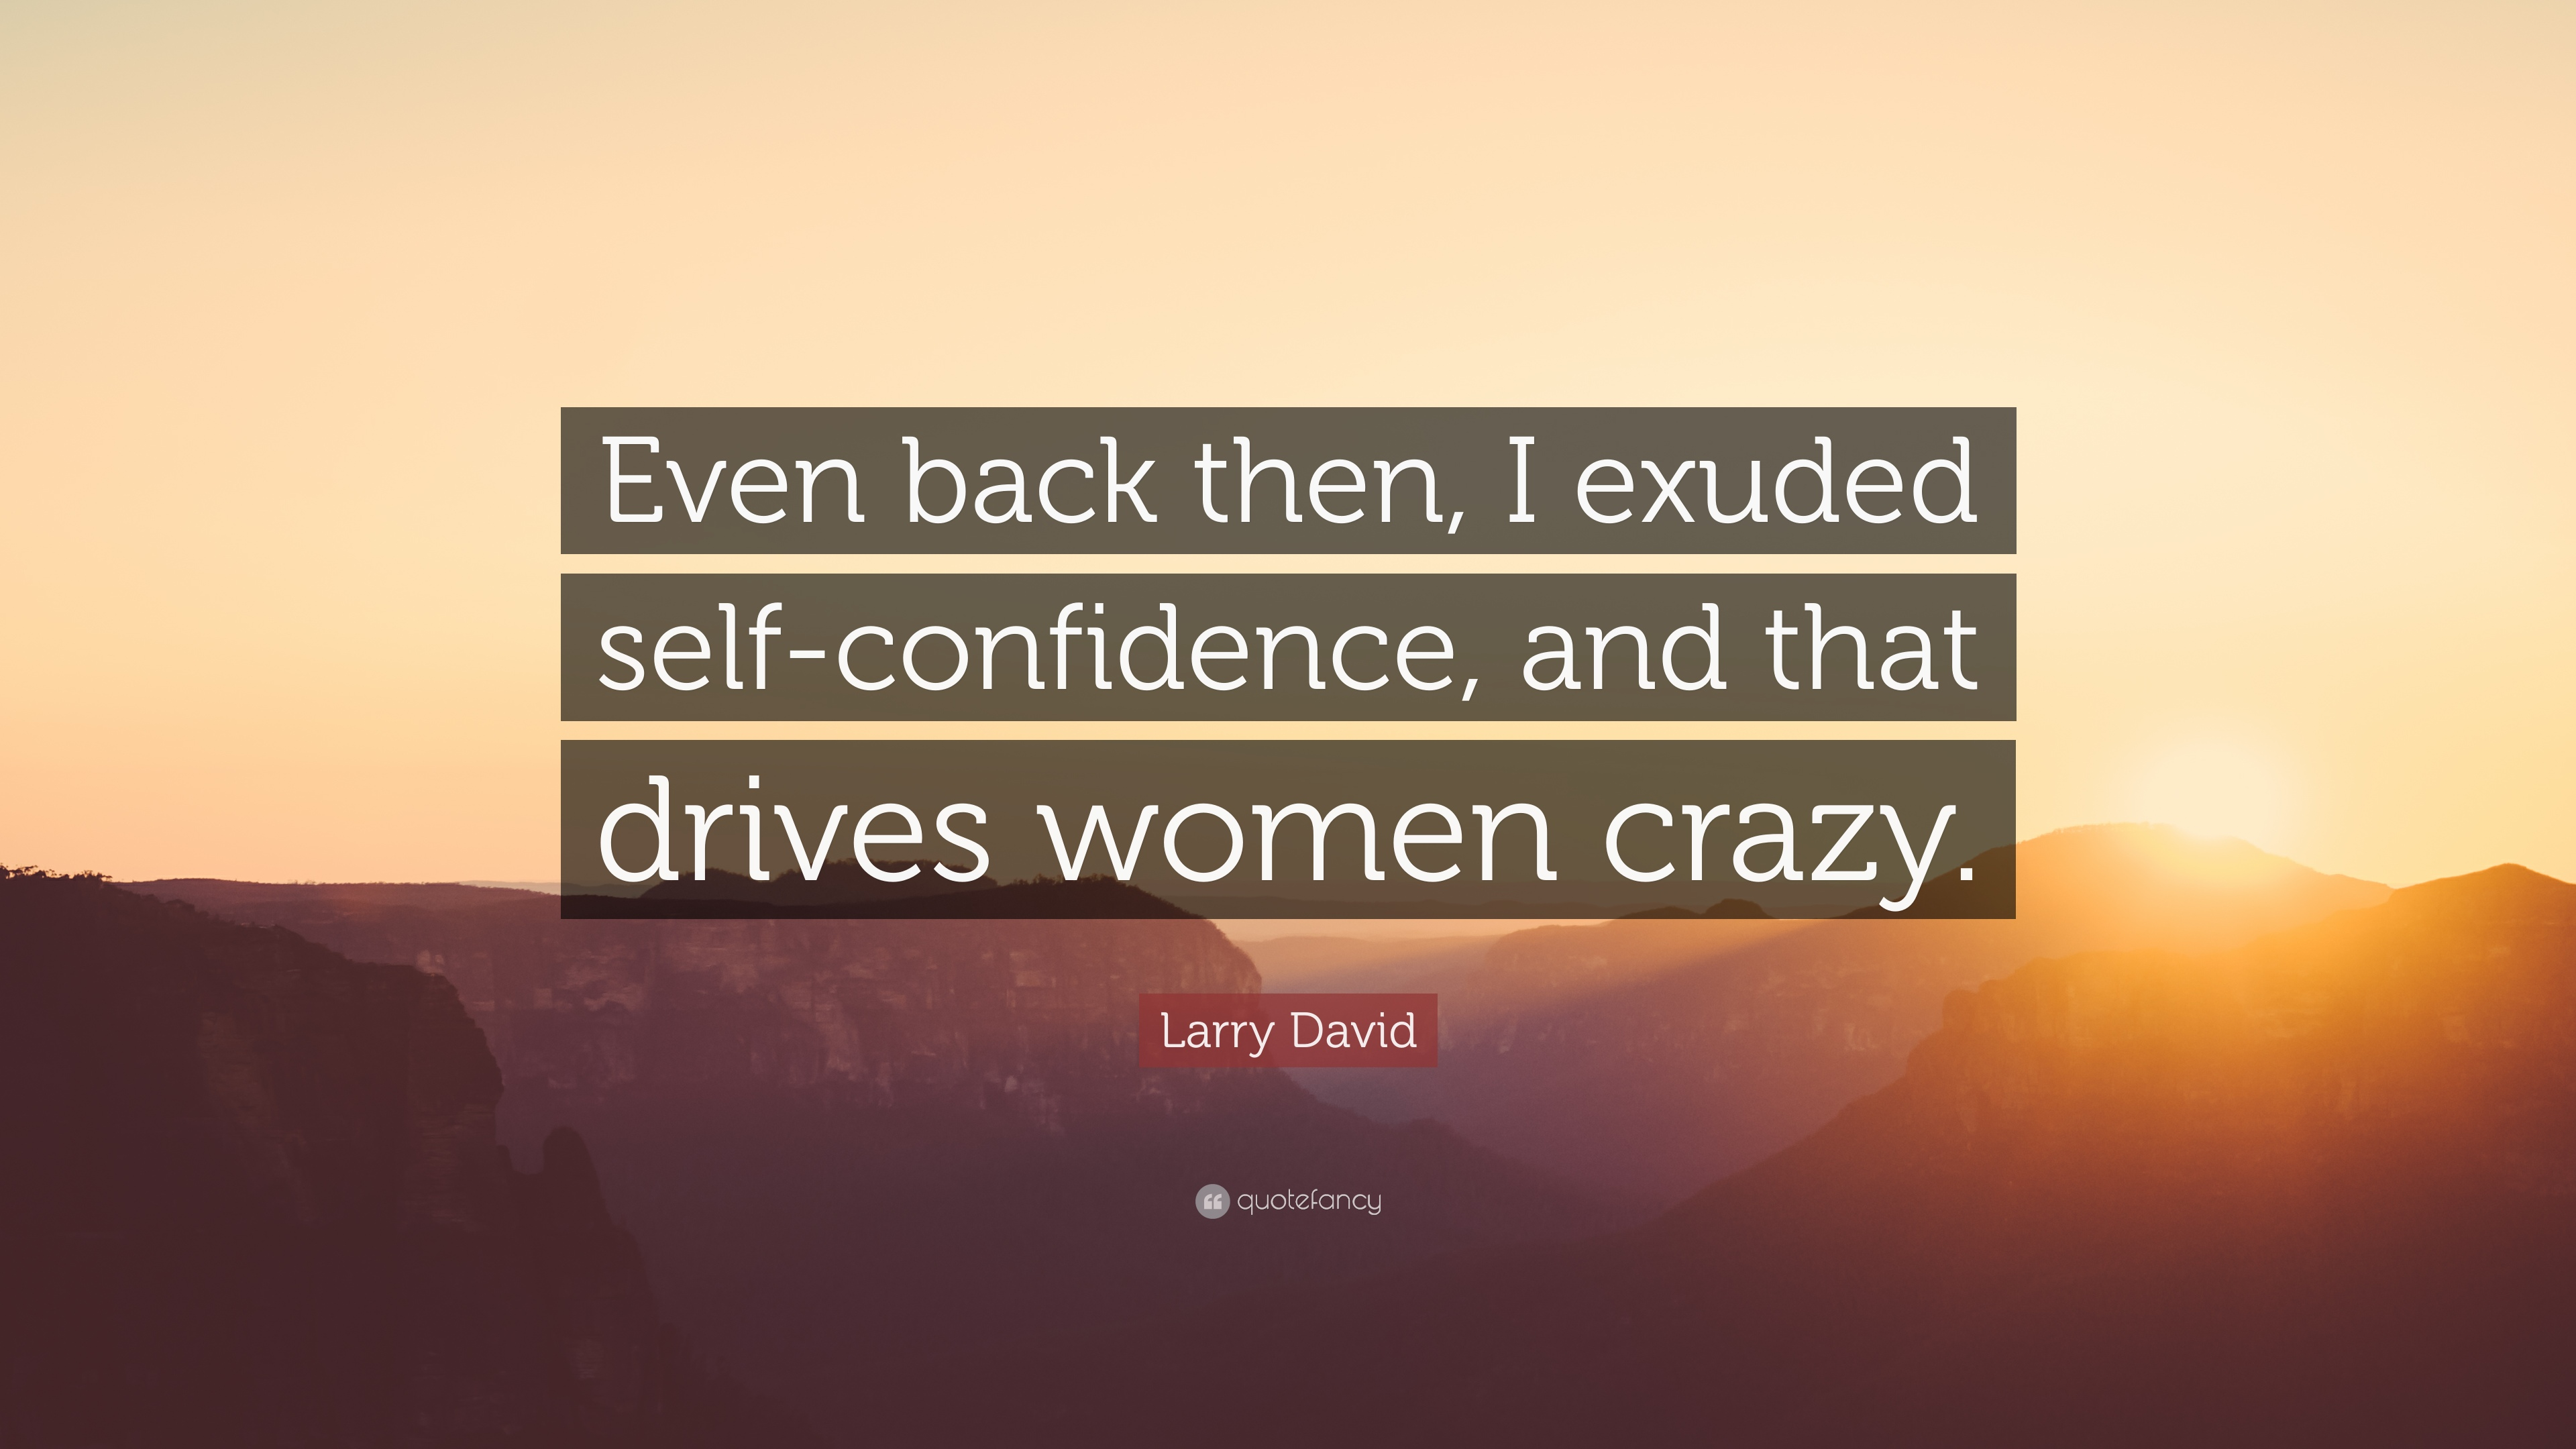 what drives women crazy